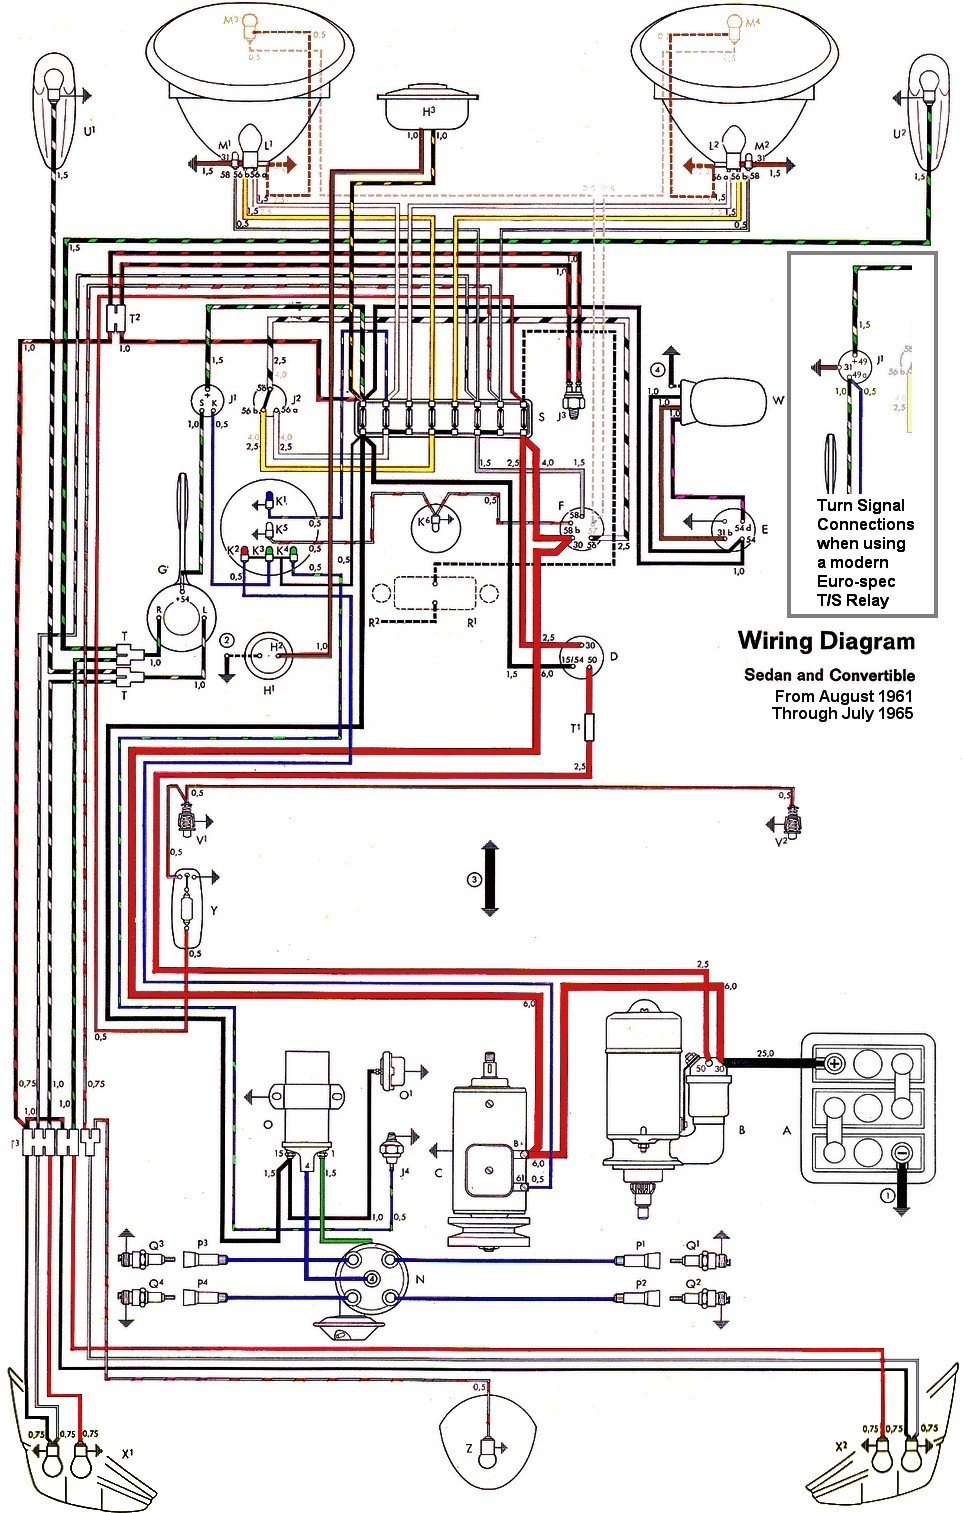 bug_62 65withinset vw wiring harness diagram cj7 wiring harness diagram \u2022 wiring vw bug painless wiring harness at aneh.co